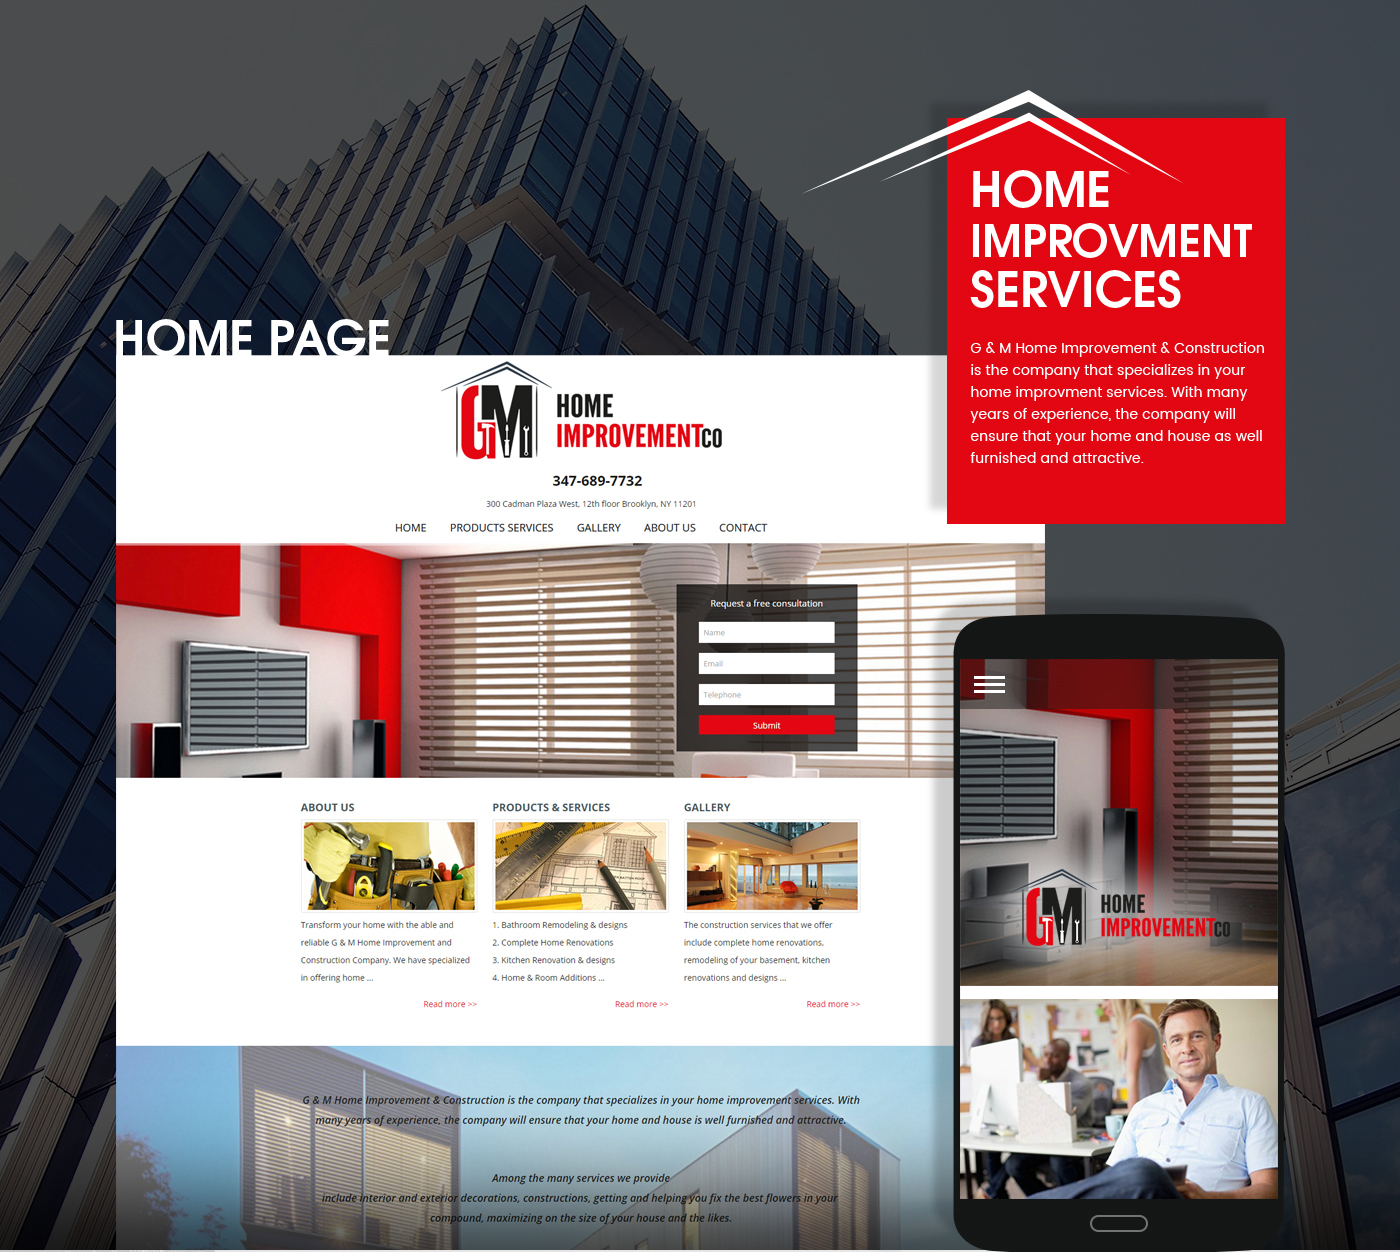 Gnm home improvement web design and development top - Best home improvement website design ...